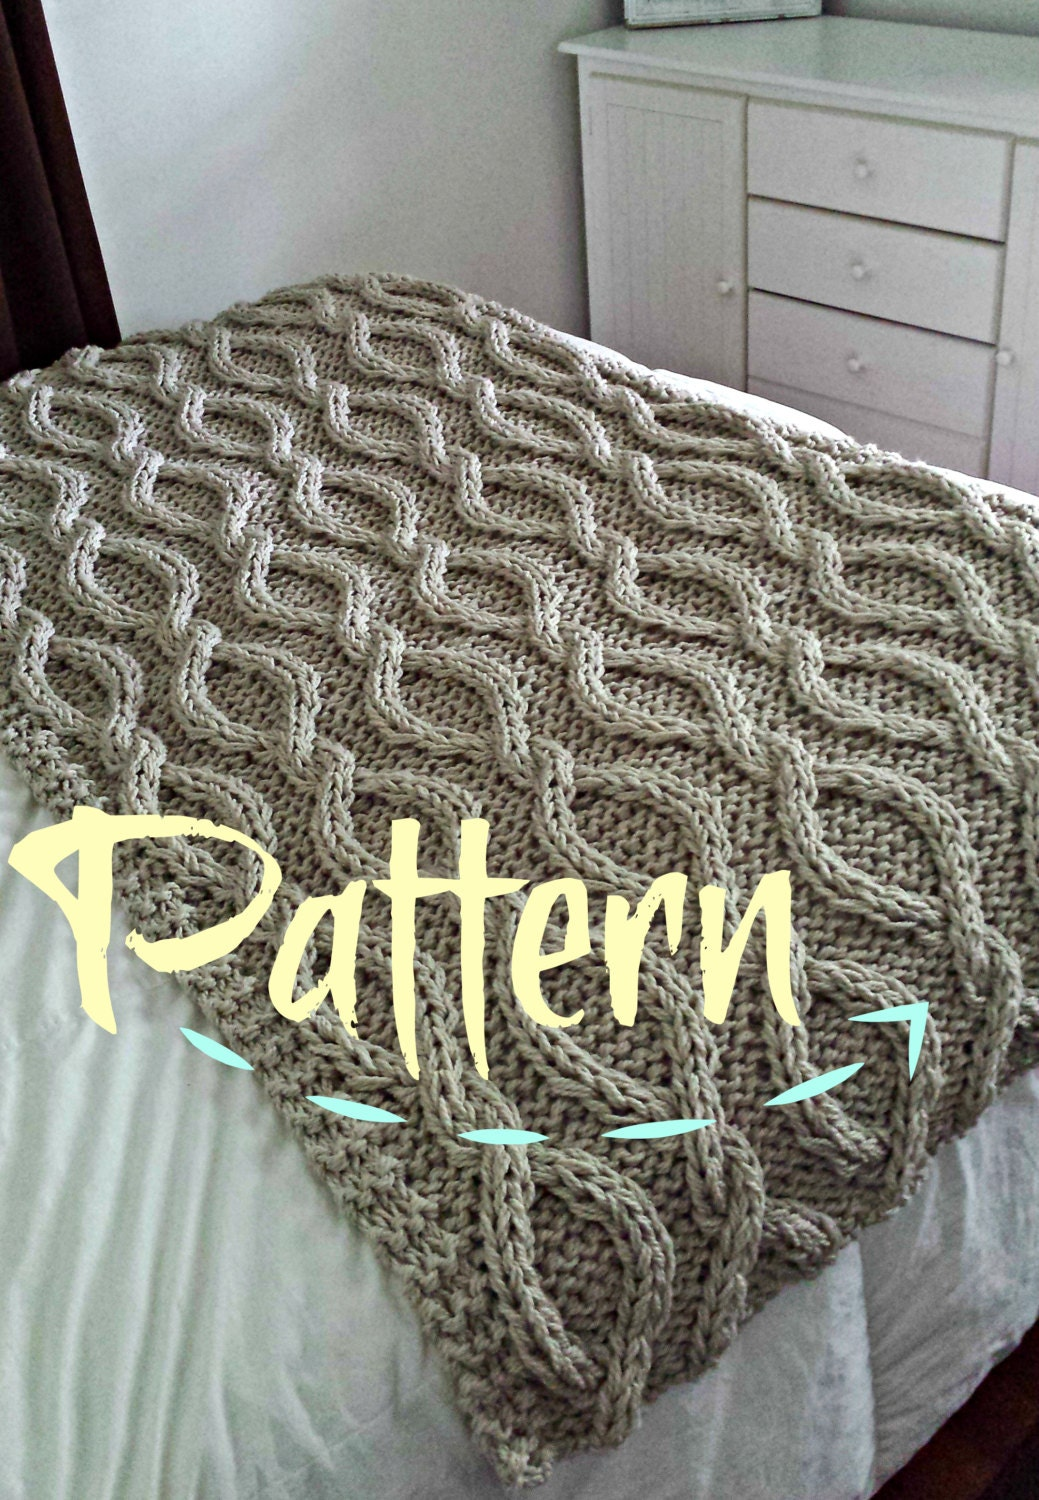 Cable Knit Throw Pattern : Infinity Cable Knit Blanket PATTERN by OzarksMomma on Etsy